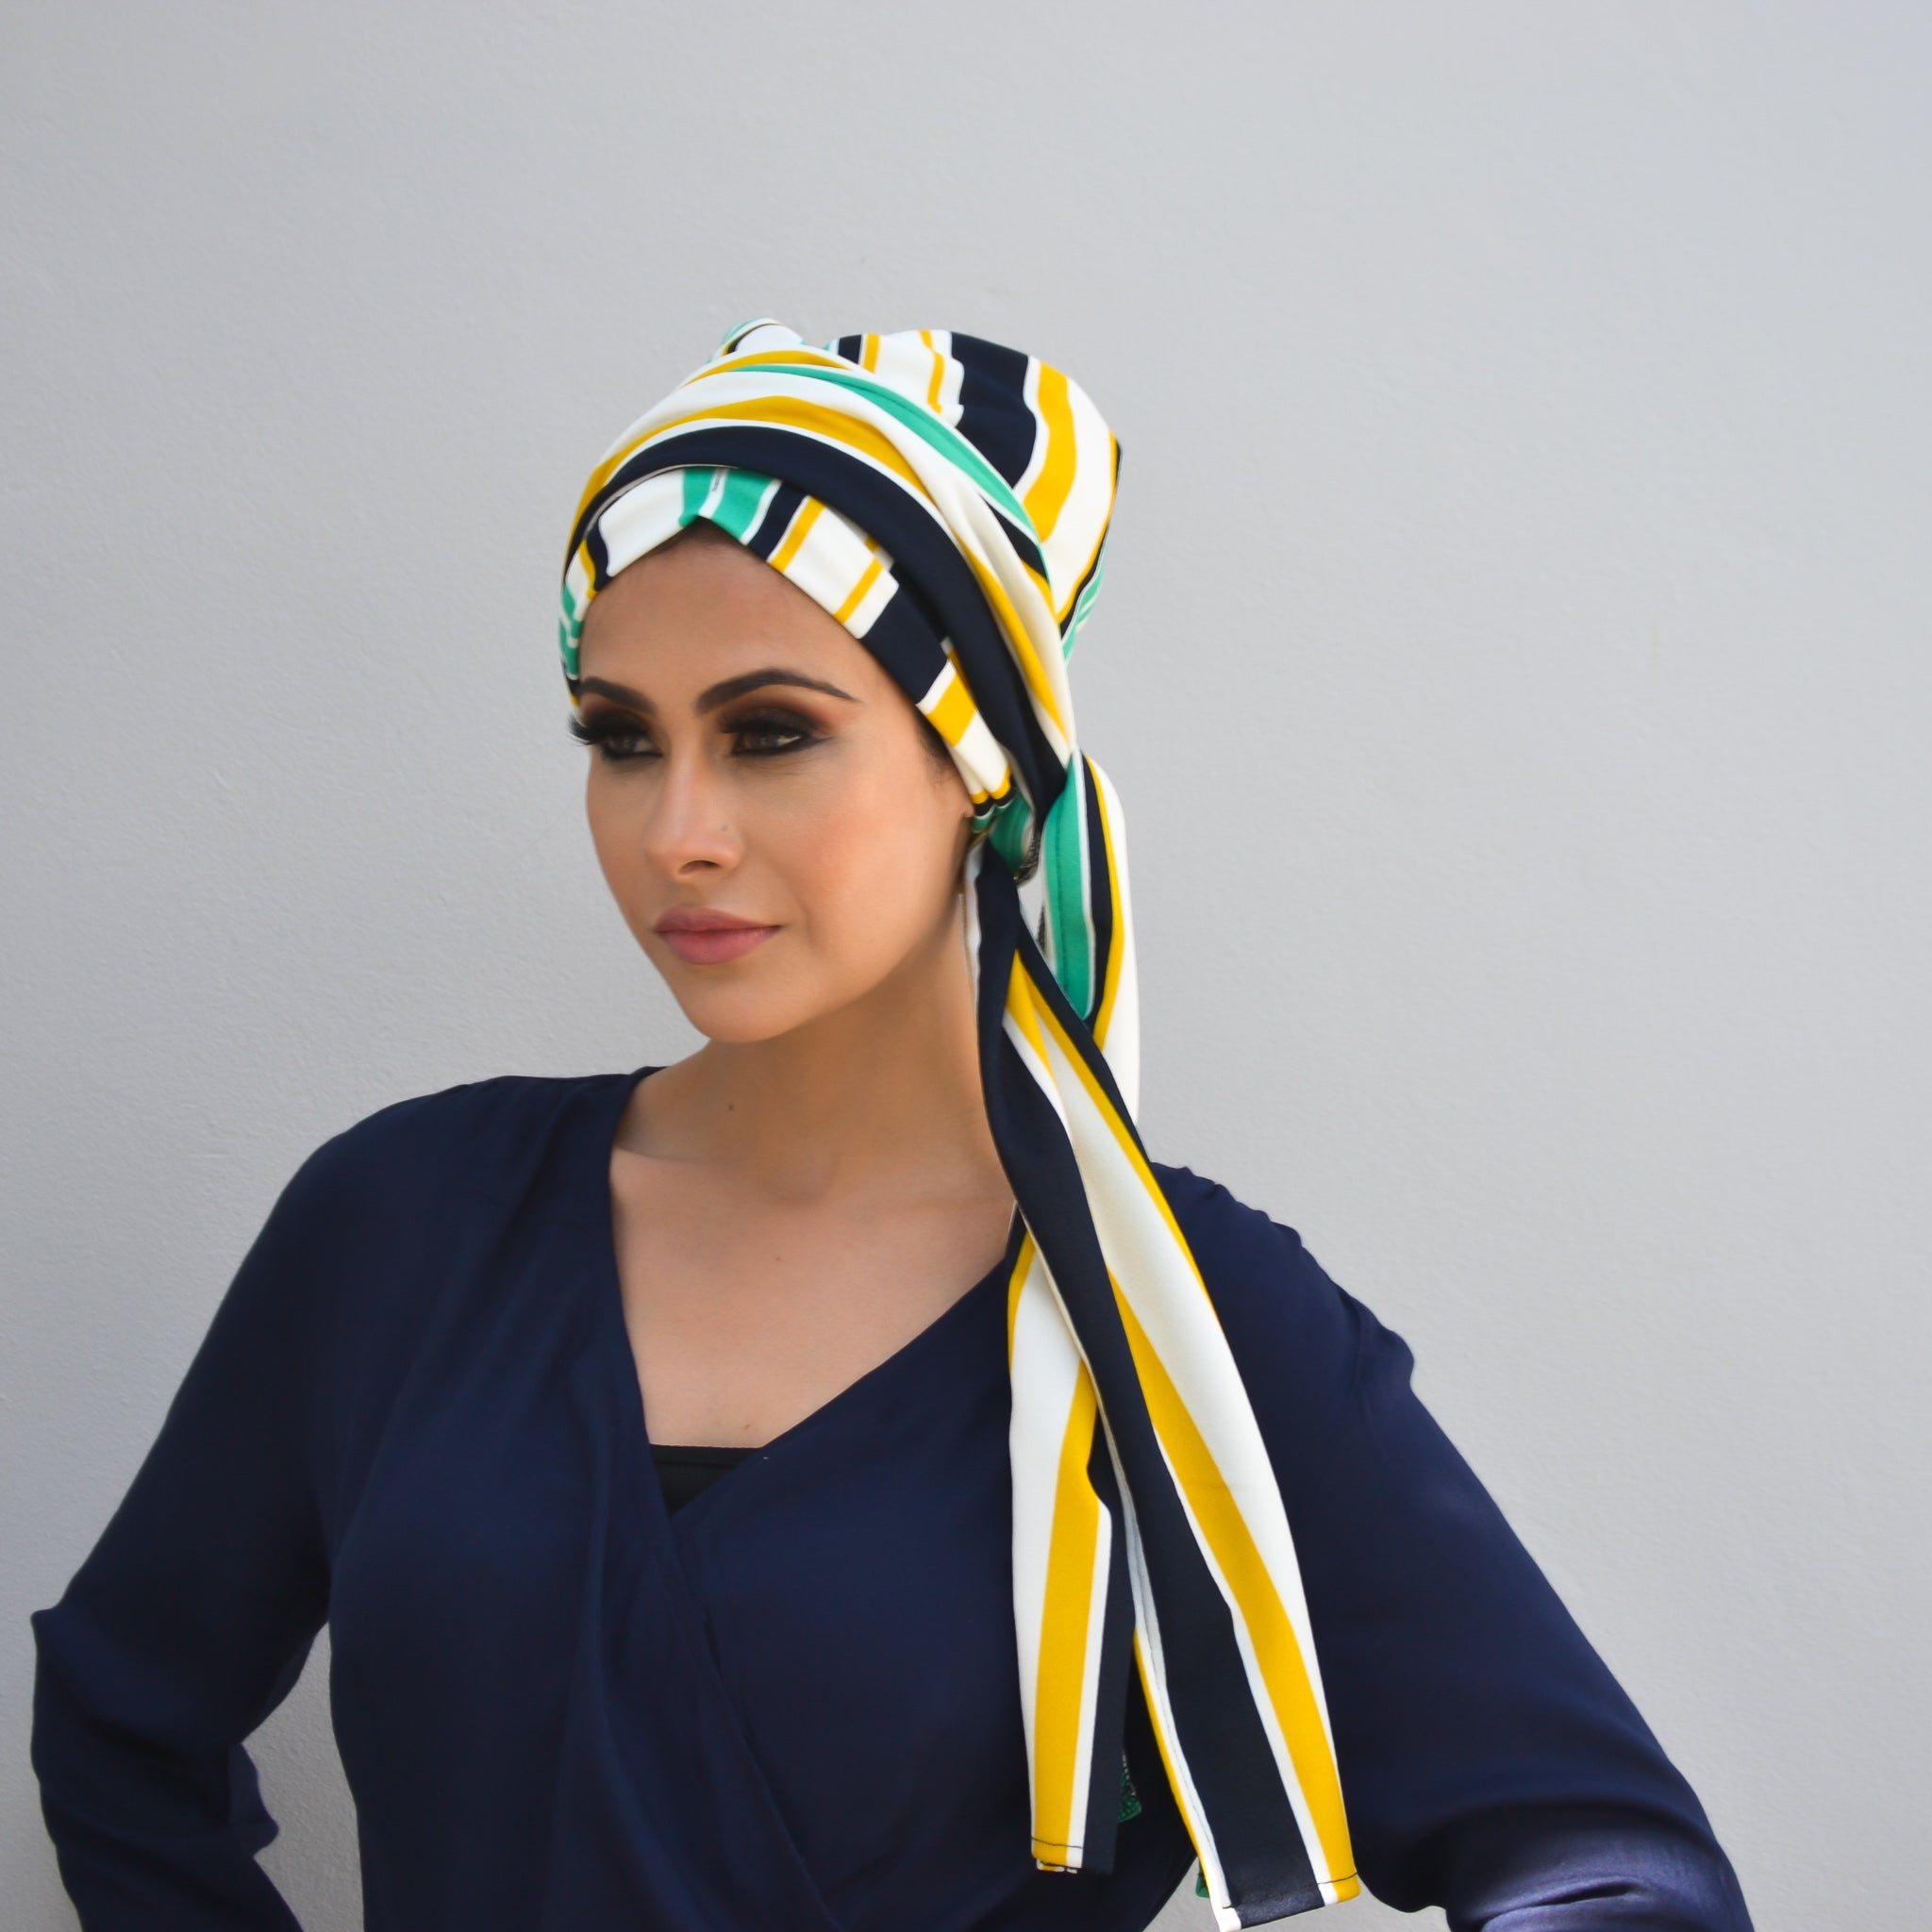 Printed Luxe Pull-on turban hijab with ties